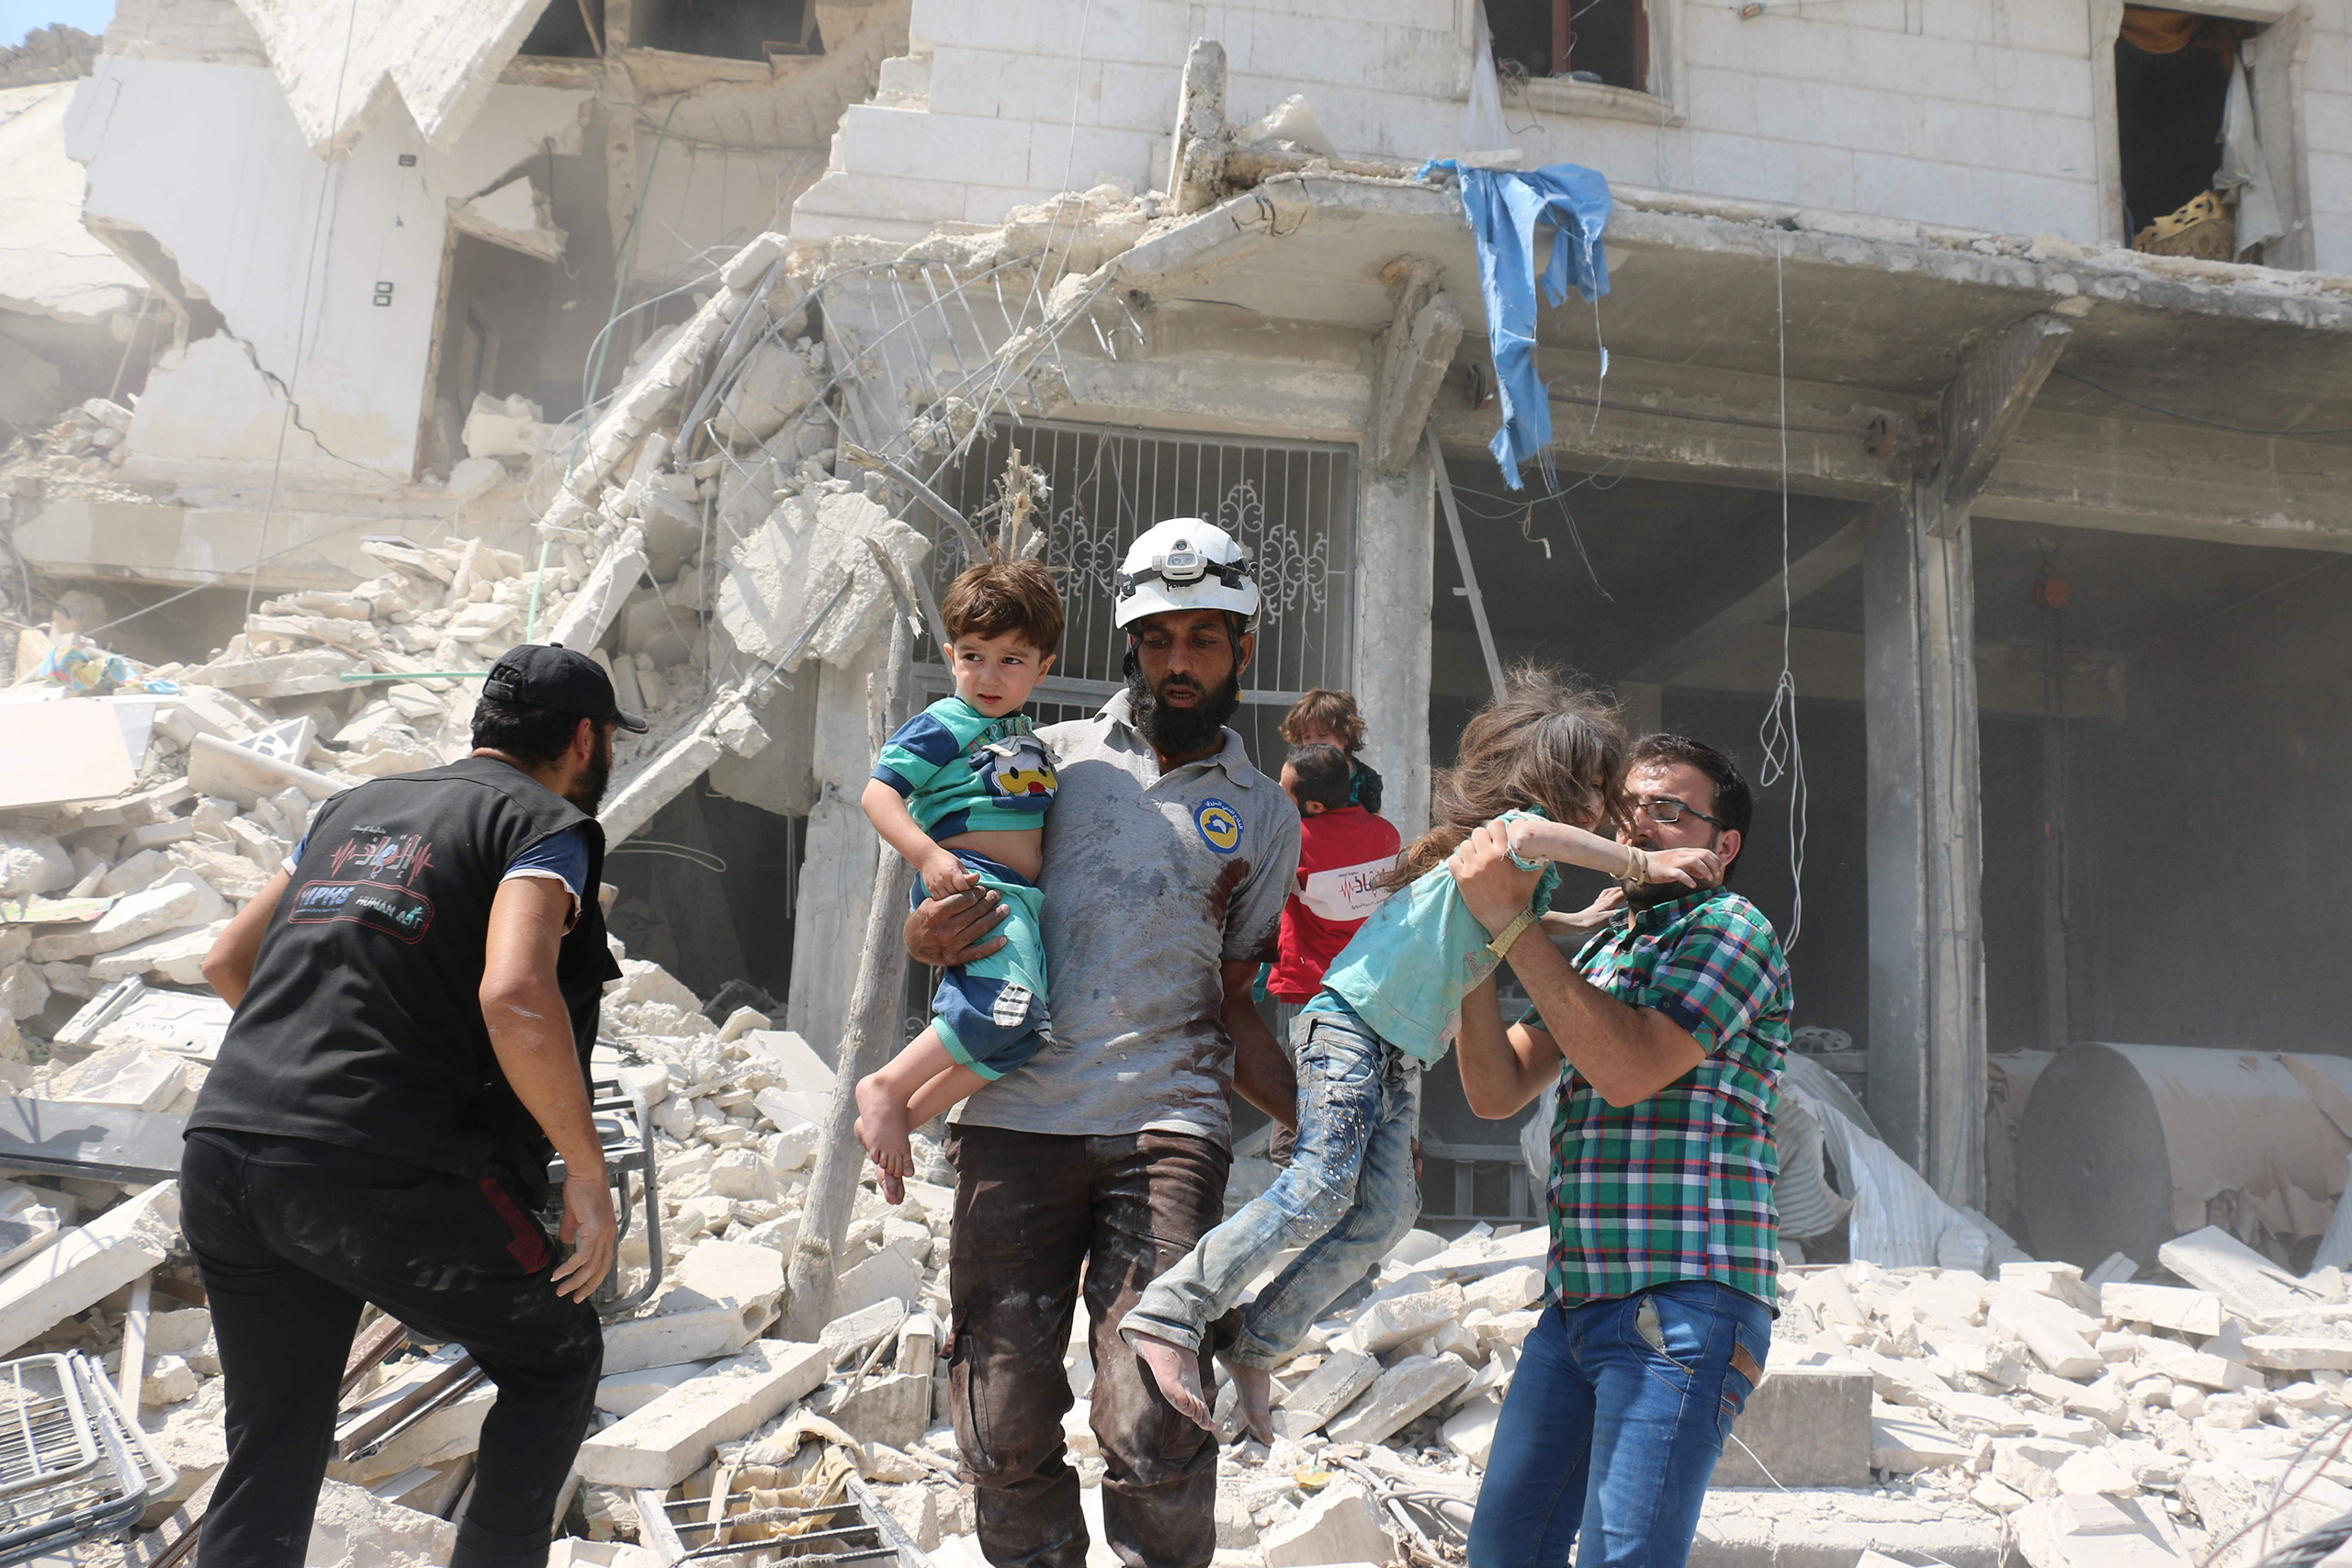 Syrian civilians and a rescue worker evacuate children in the Maadi district of eastern Aleppo after regime aircrafts reportedly dropped explosive-packed barrel bombs on Aug. 27, 2016.